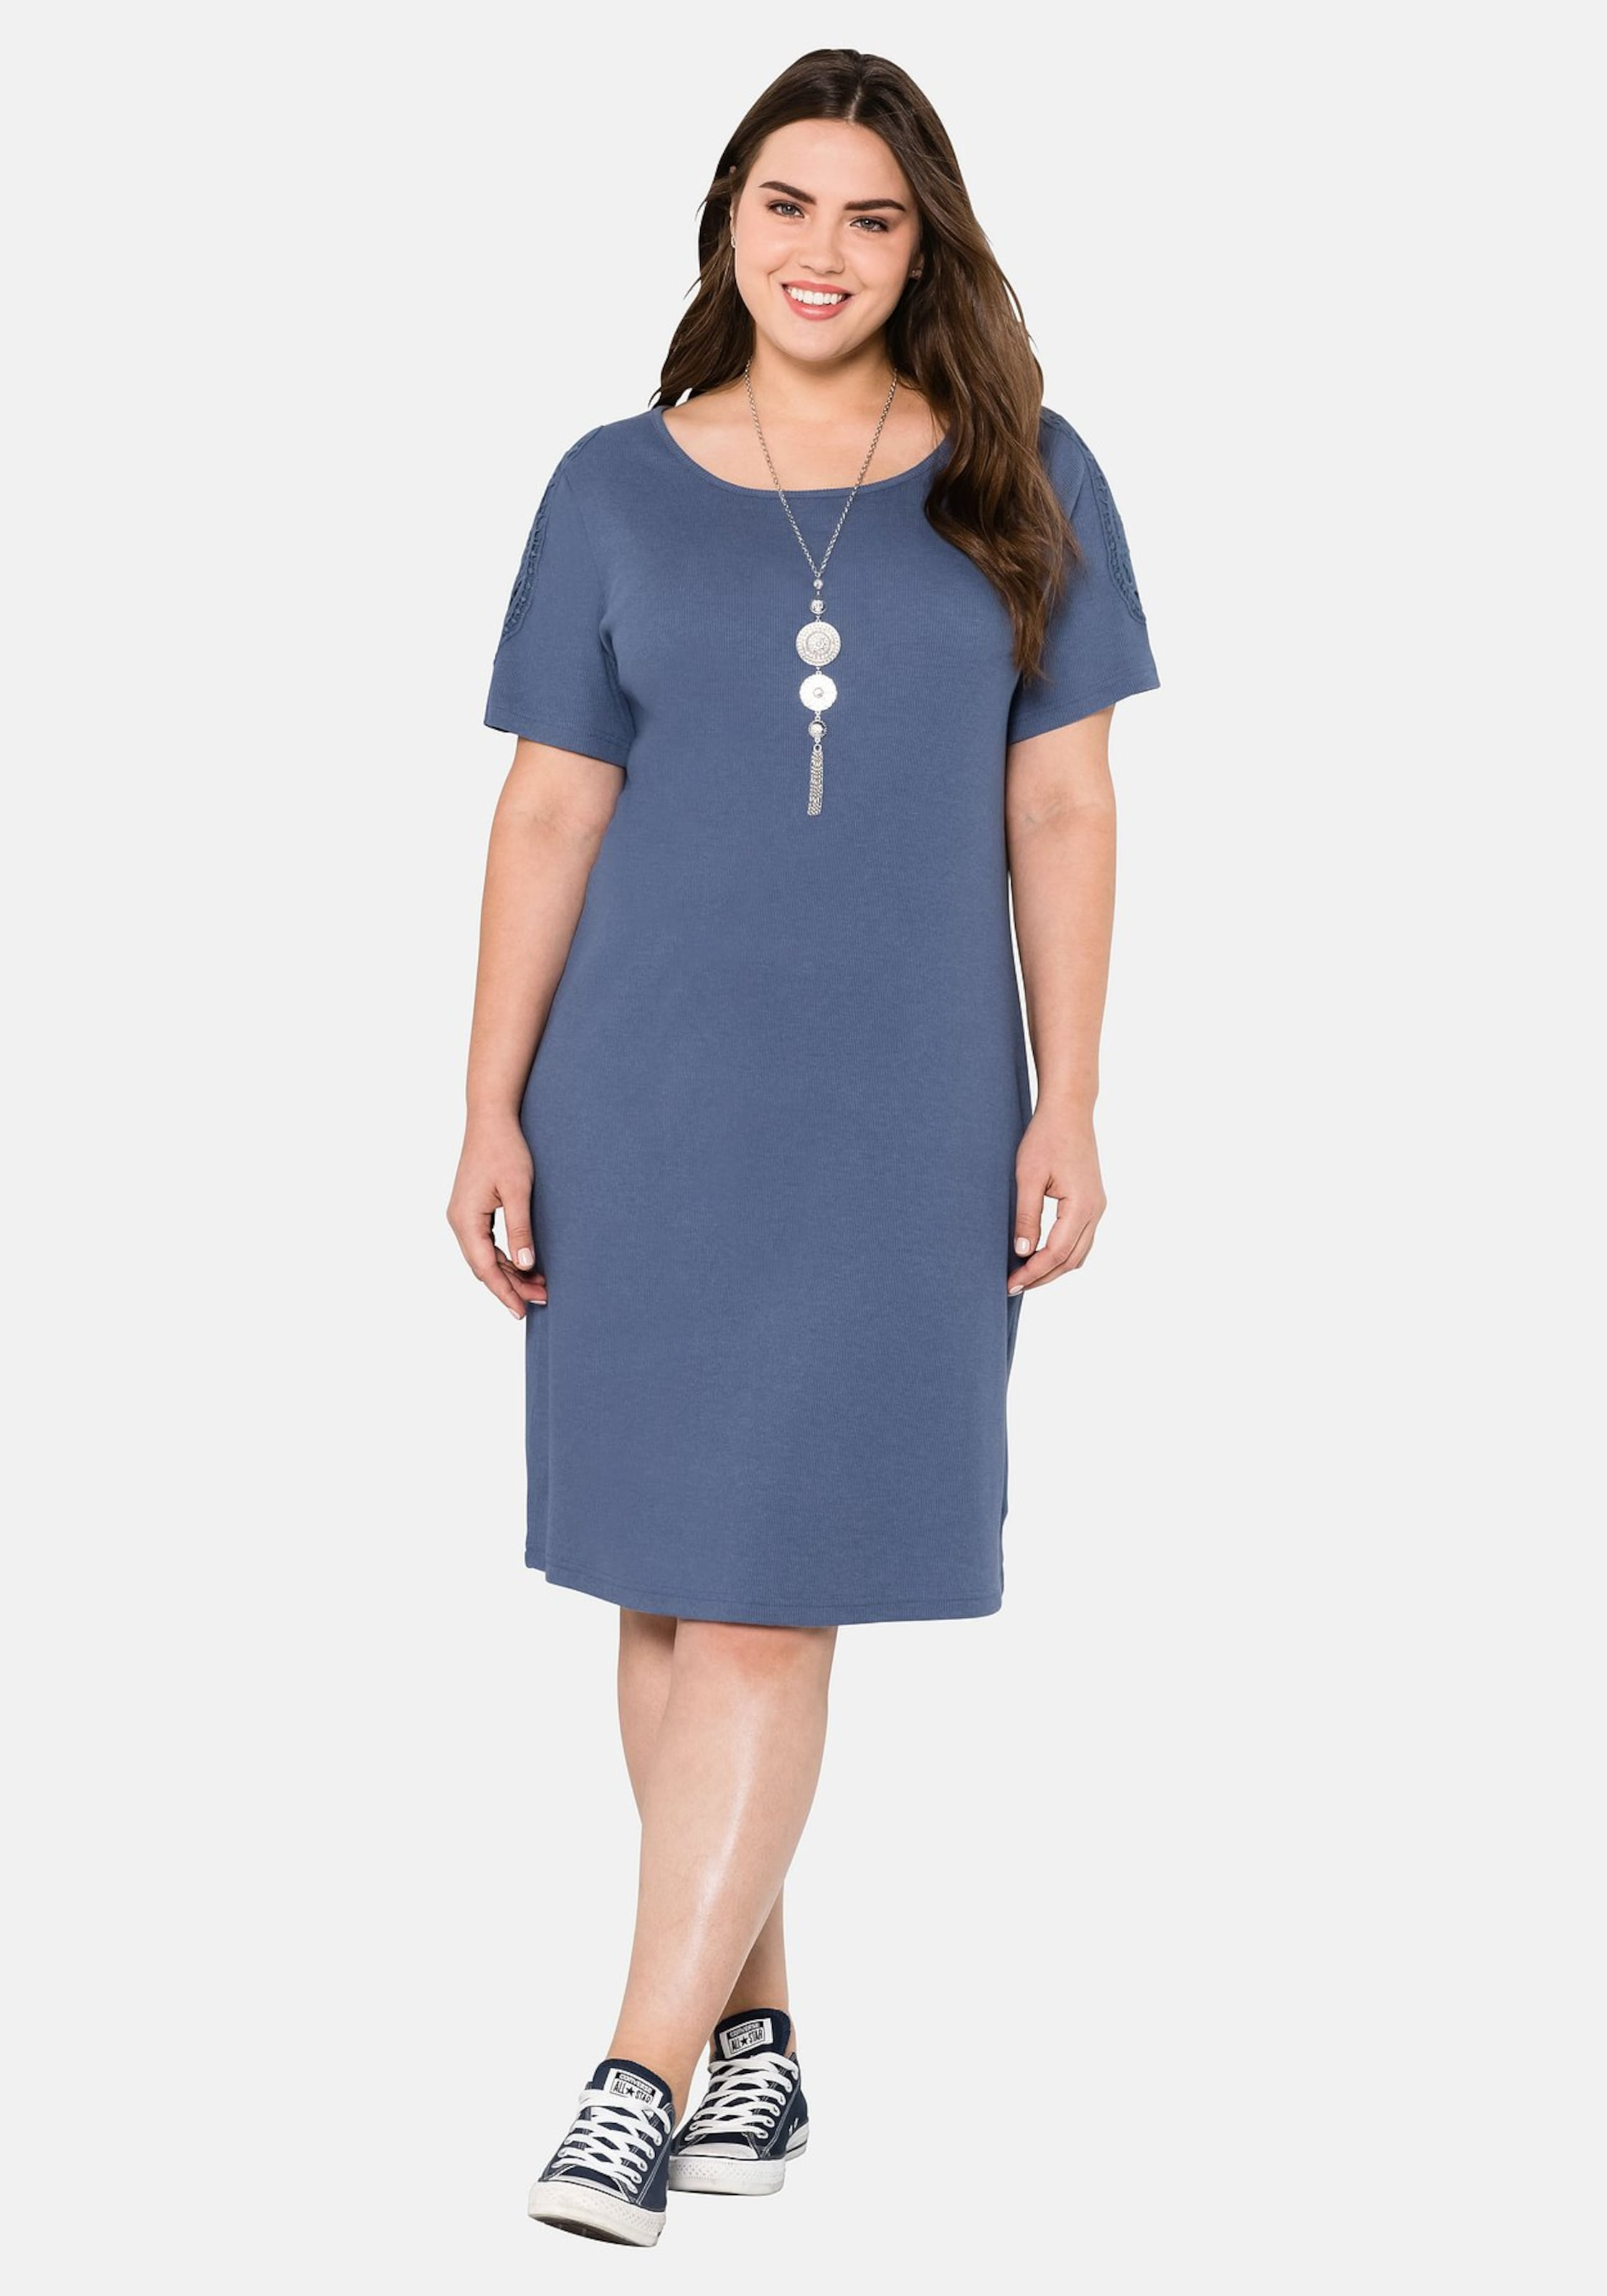 Sheego Jerseykleid In Blau Sheego Blau In Sheego Jerseykleid In Jerseykleid On0P8wk